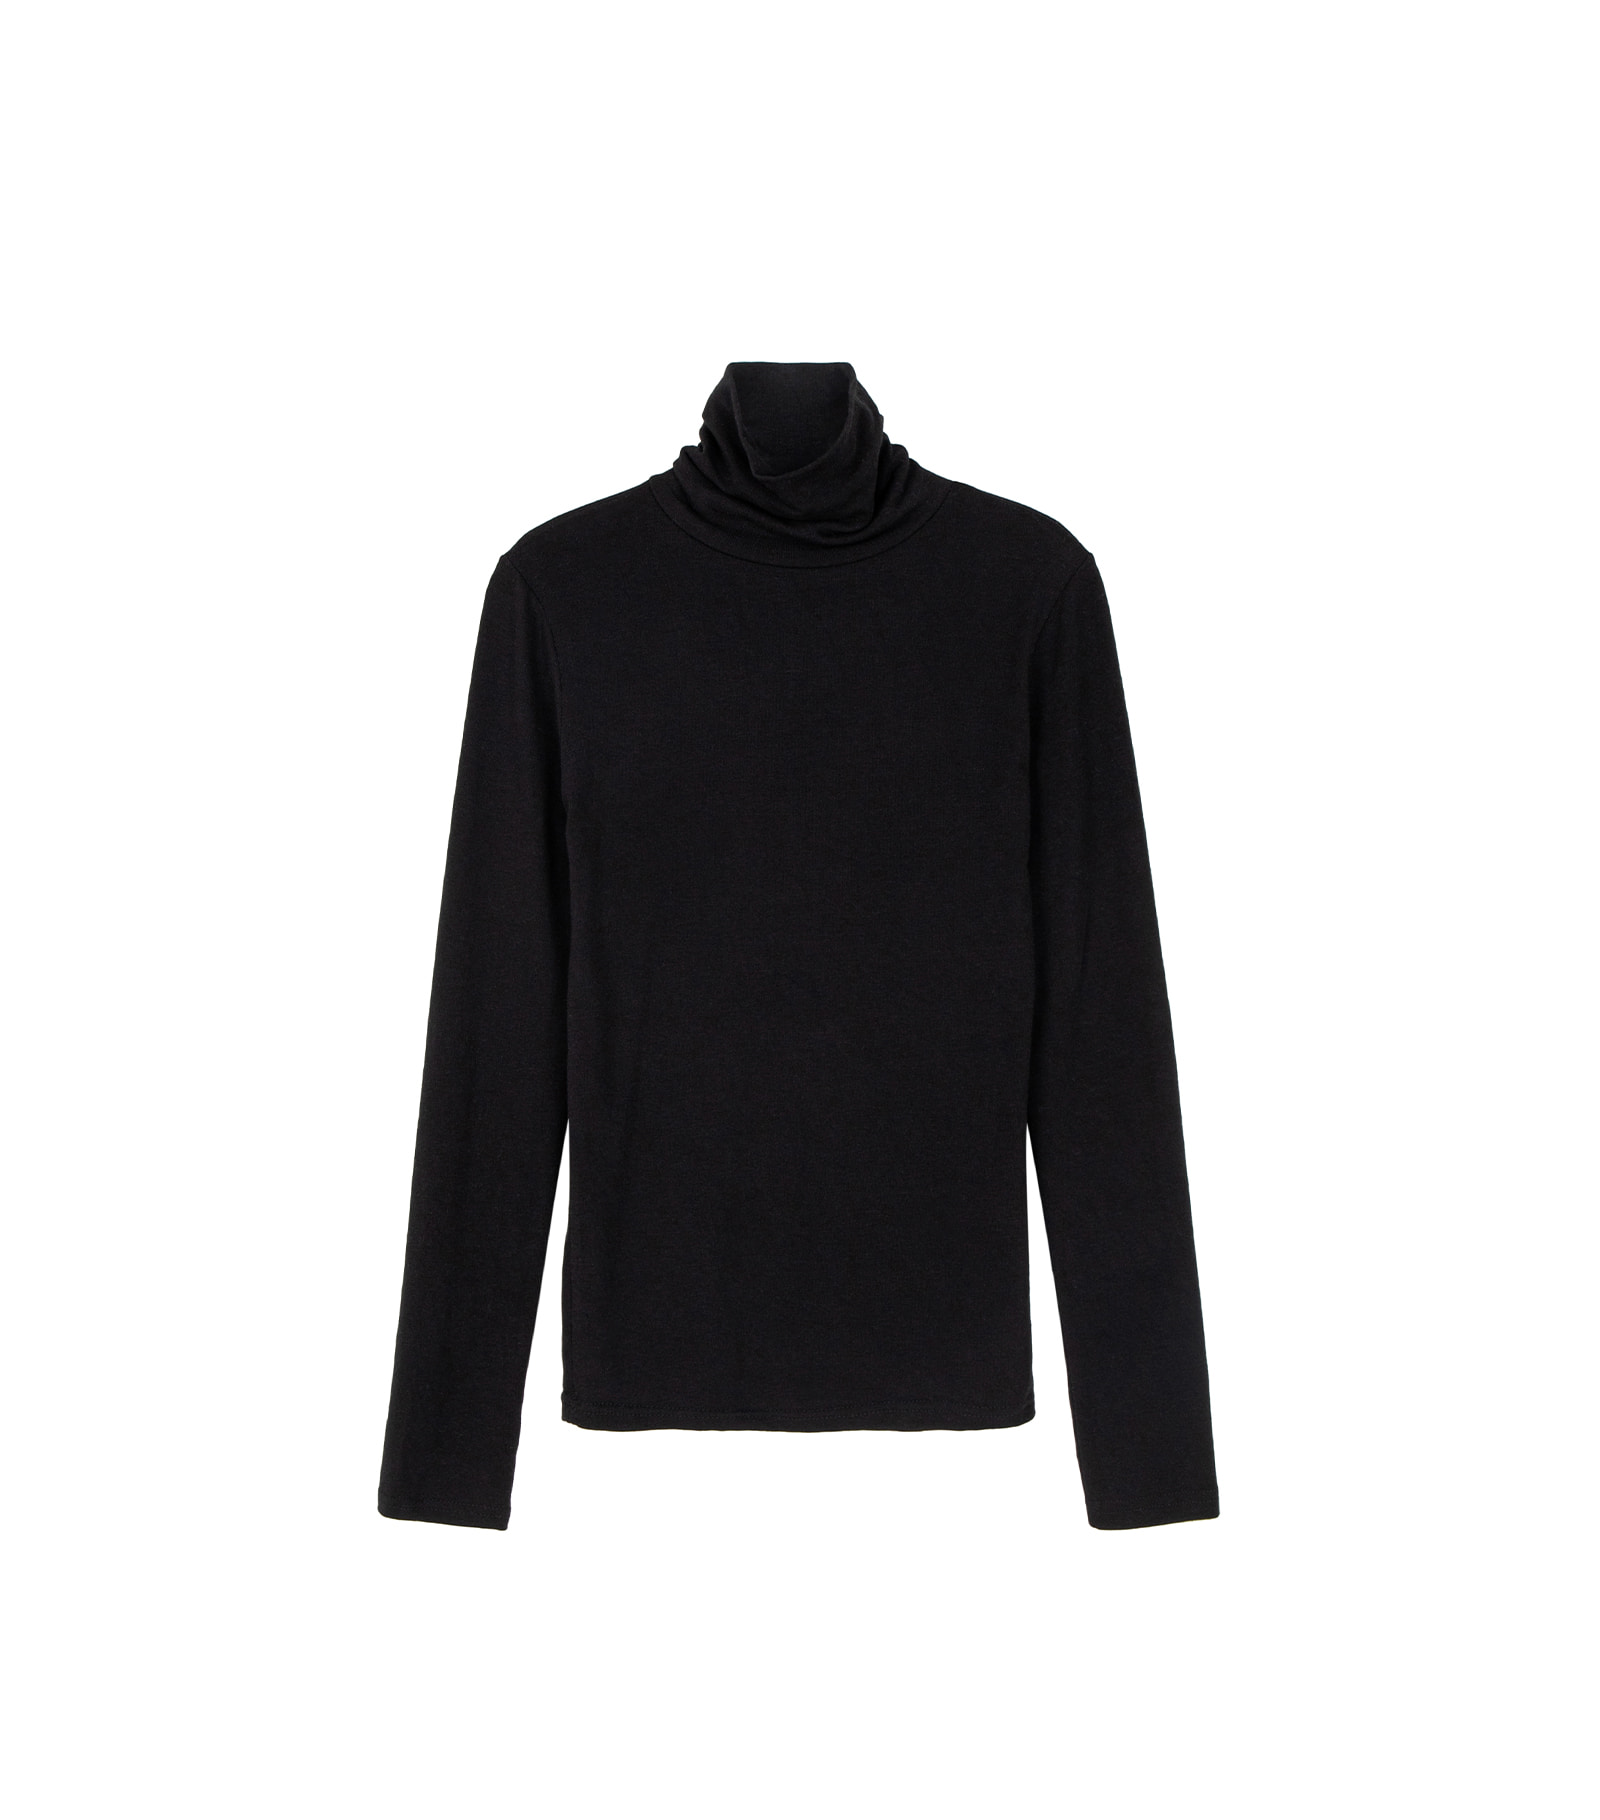 Pudding turtleneck long sleeve top